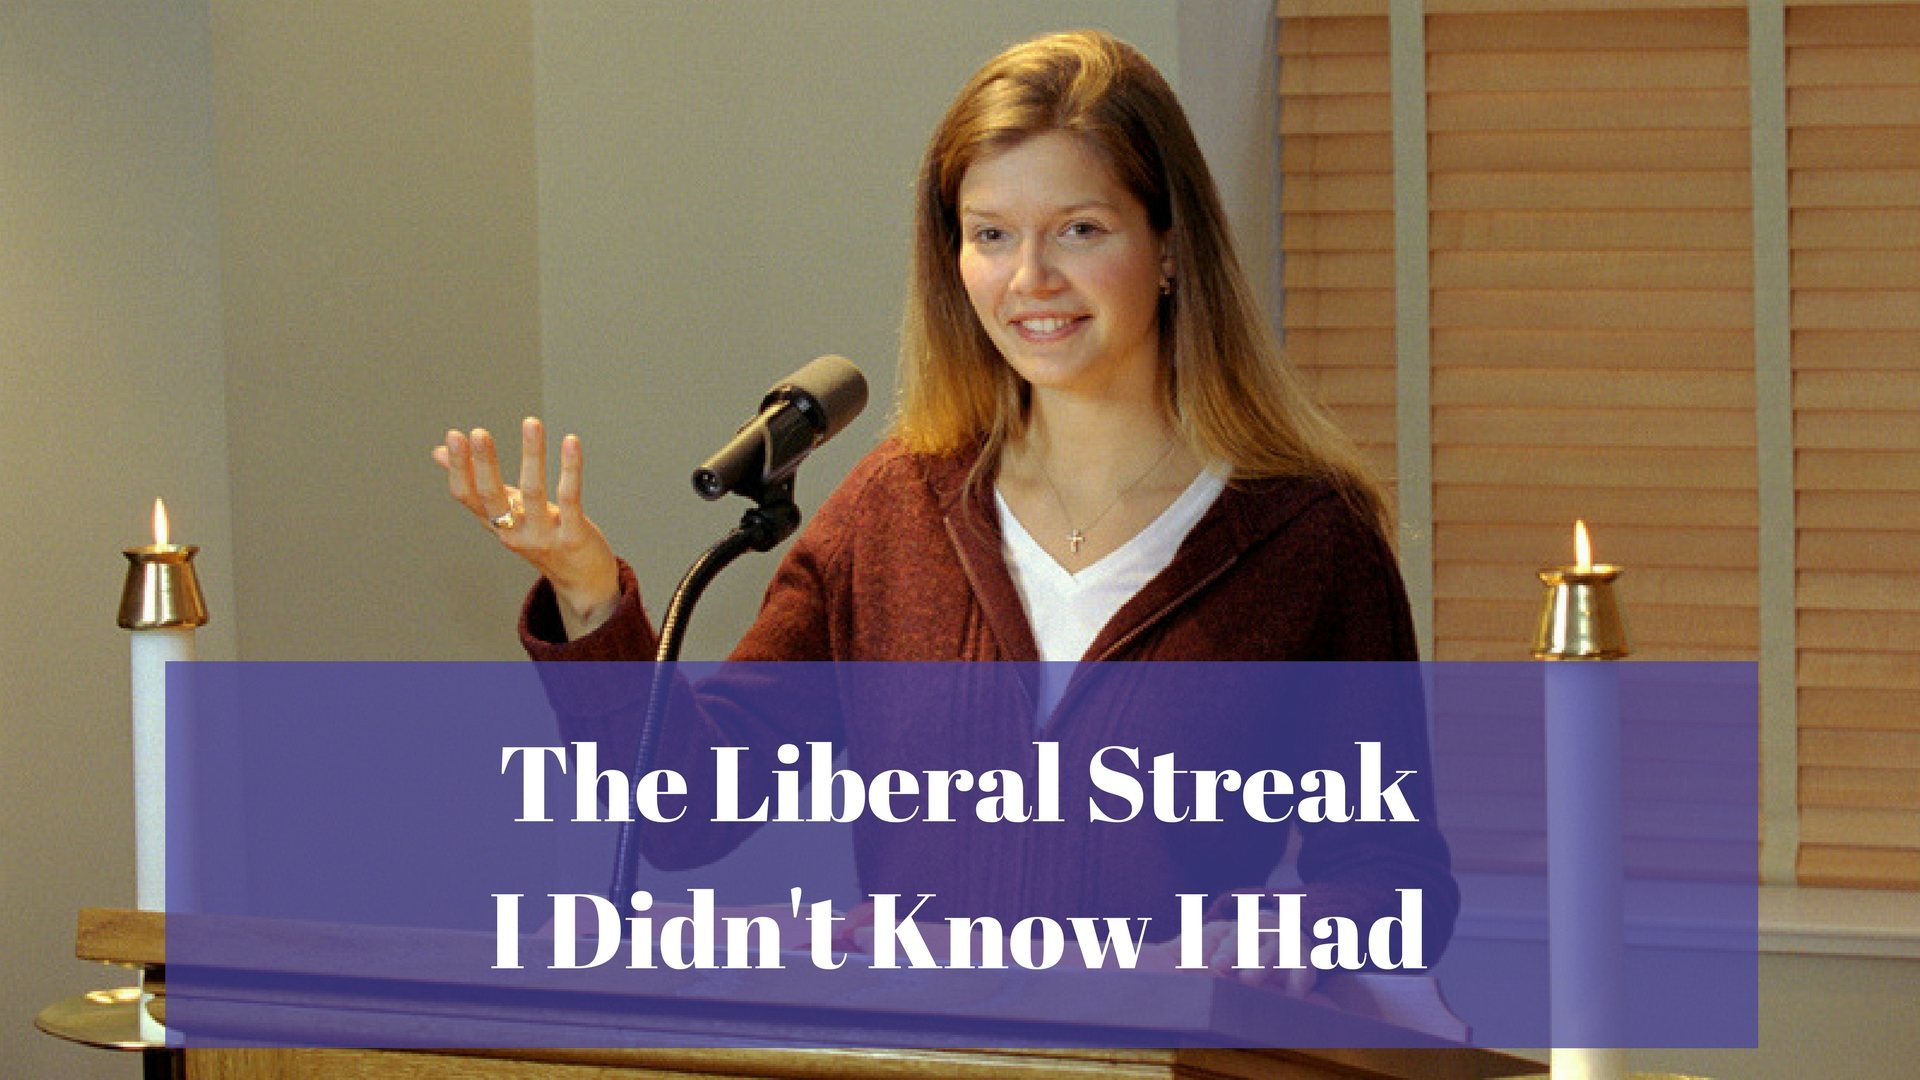 The Liberal StreakI Didn't Know I Had.jpg